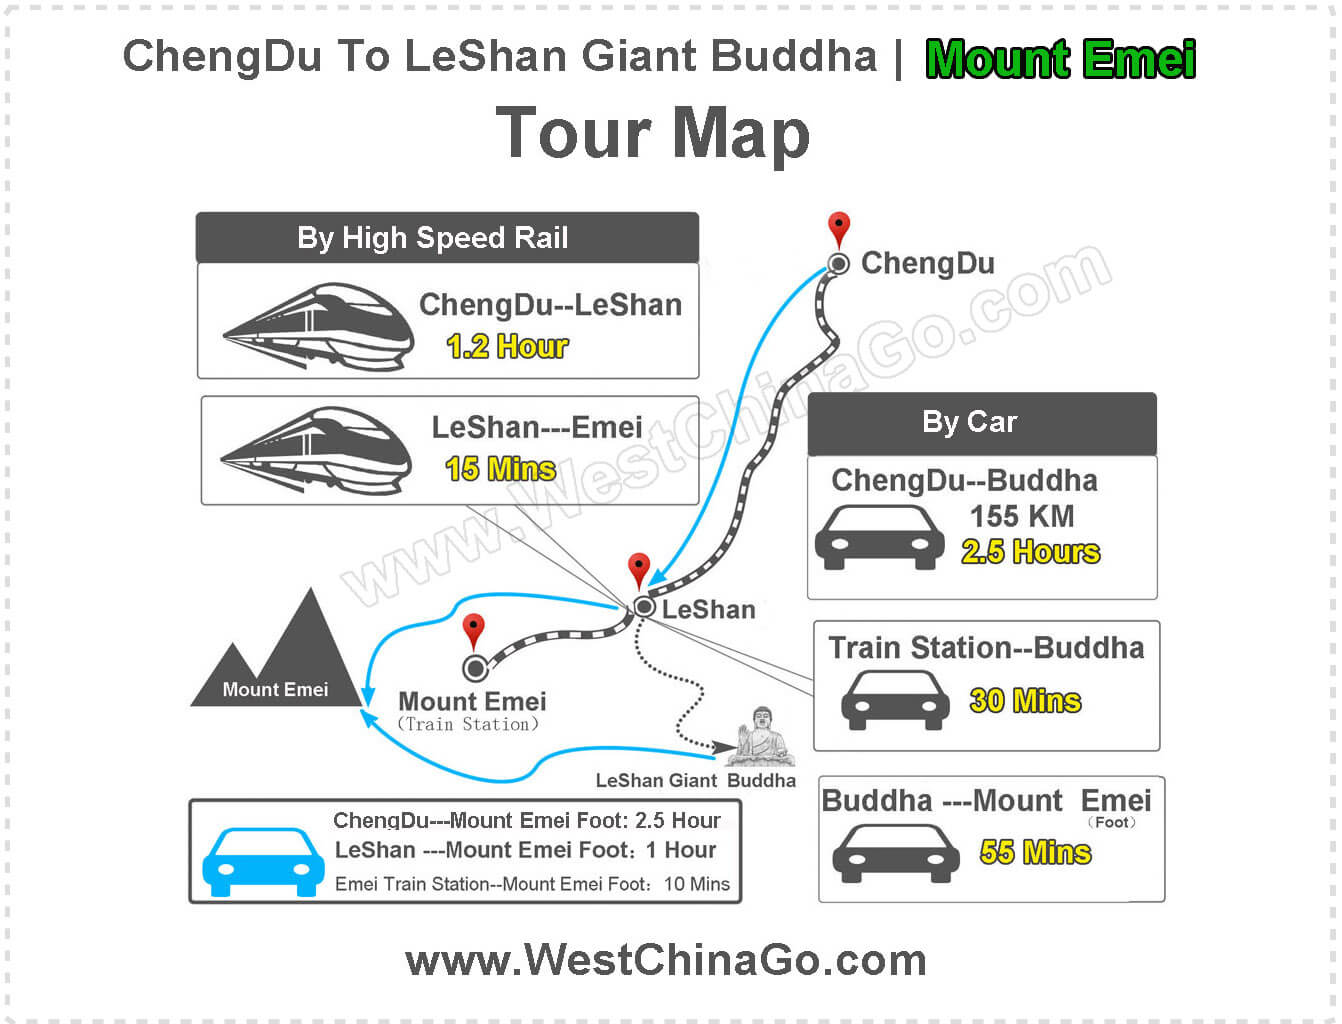 chengdu to leshan emei tour map